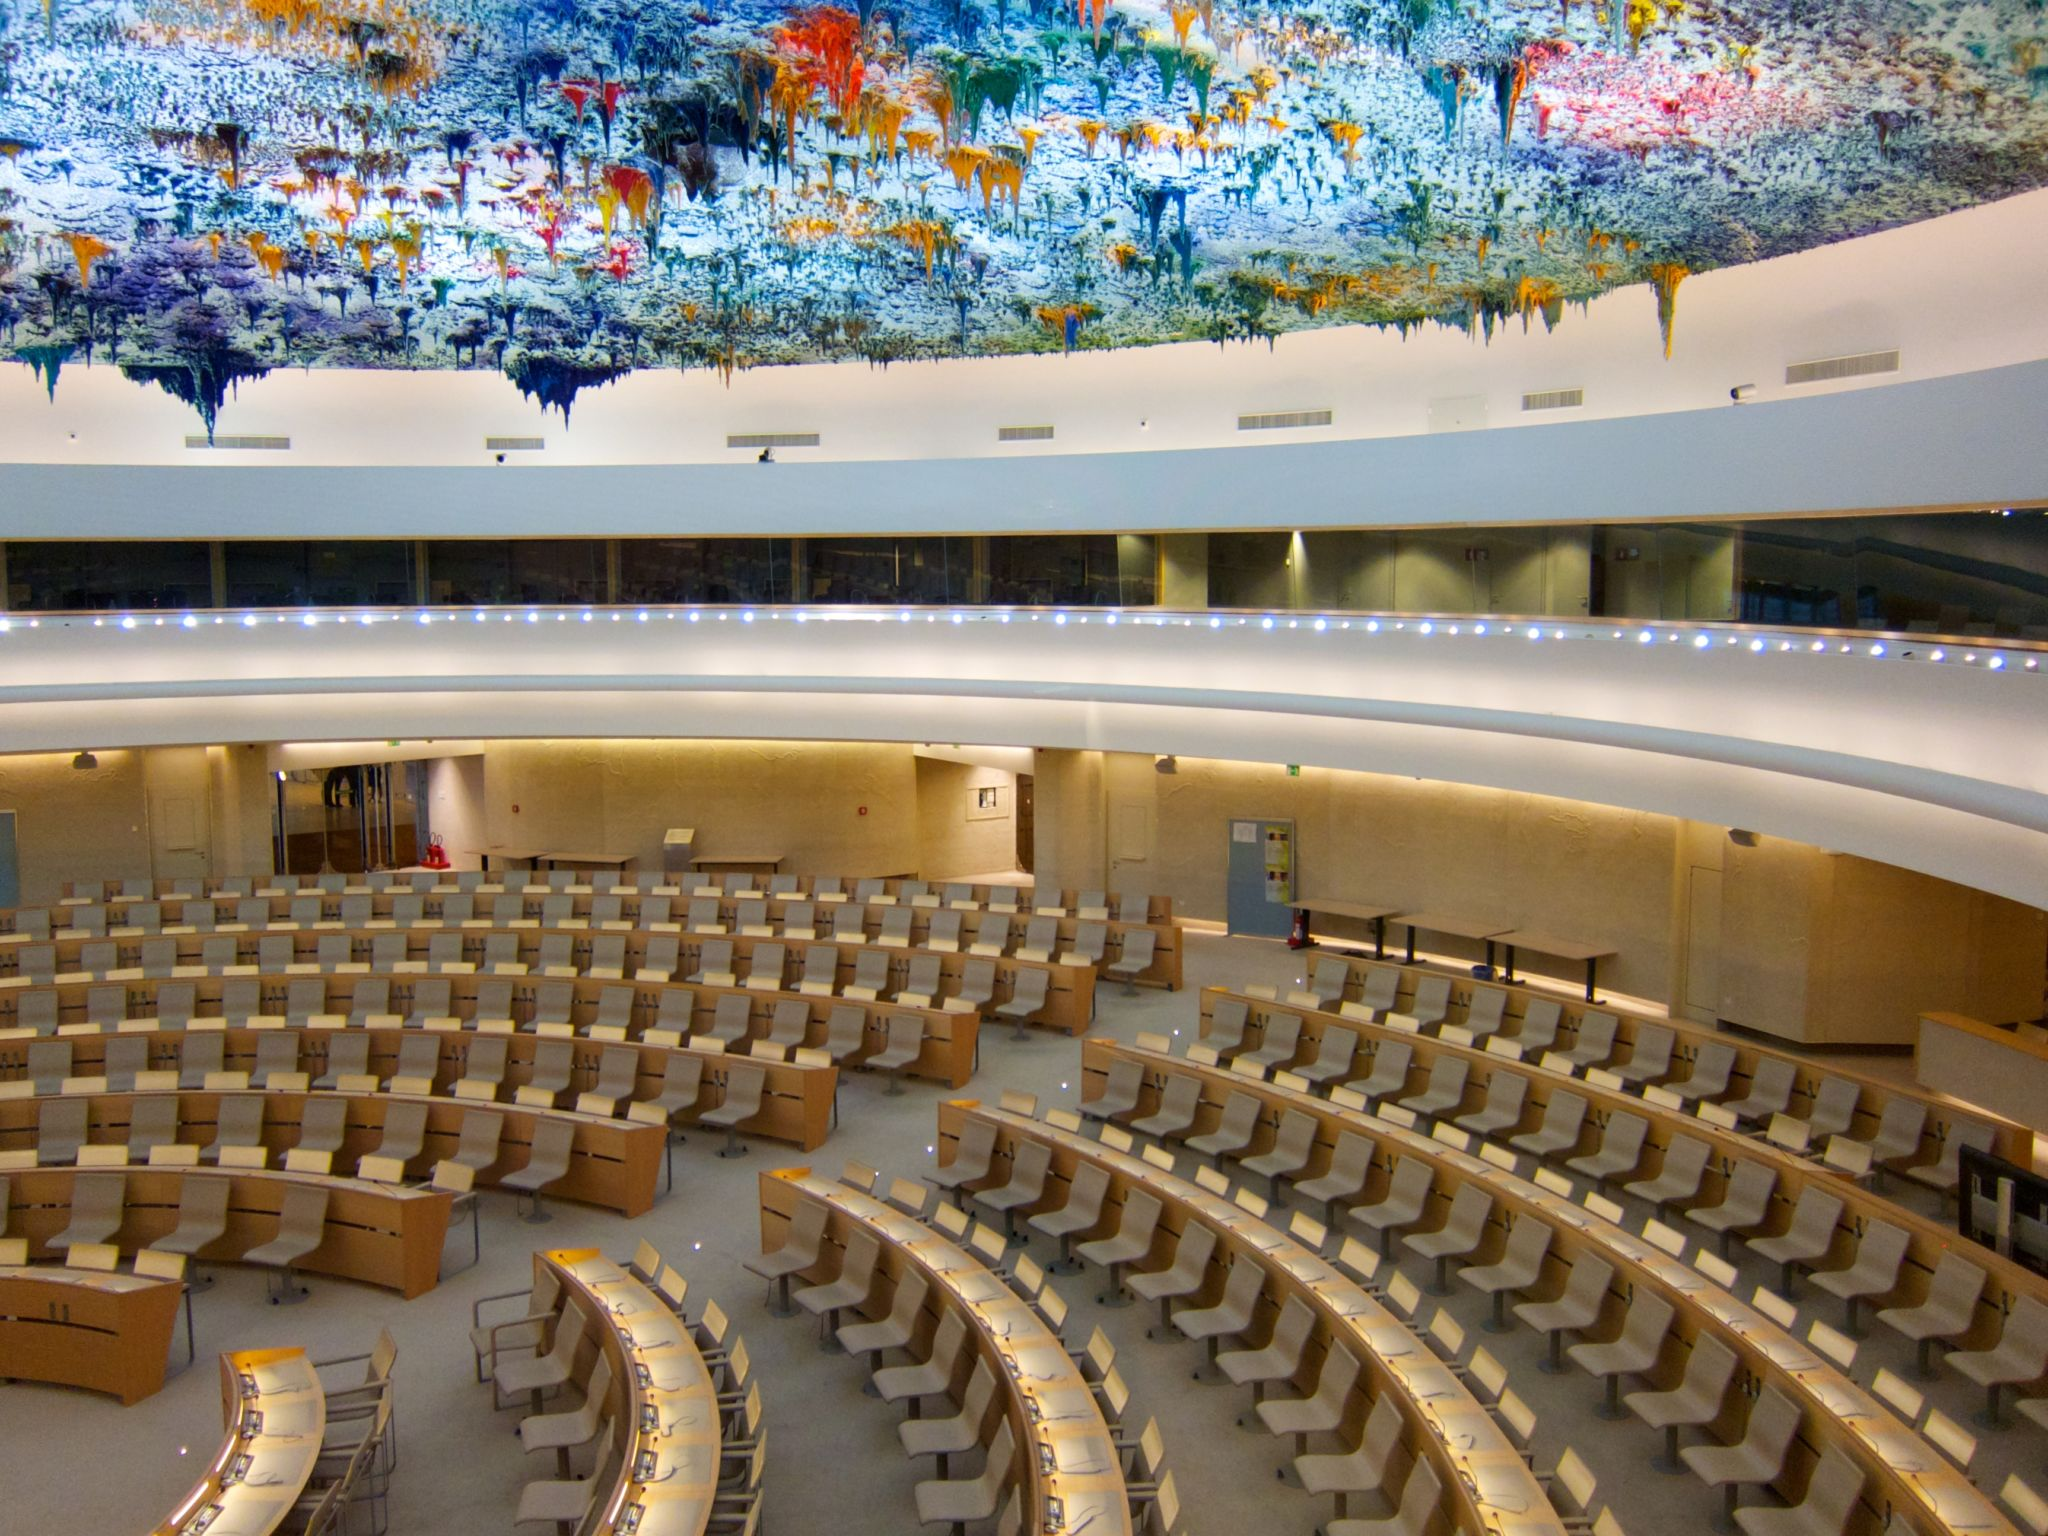 Room XX, Palais des Nations. Ceiling by Miquel Barceló. Photo by BriYYZ via Flickr